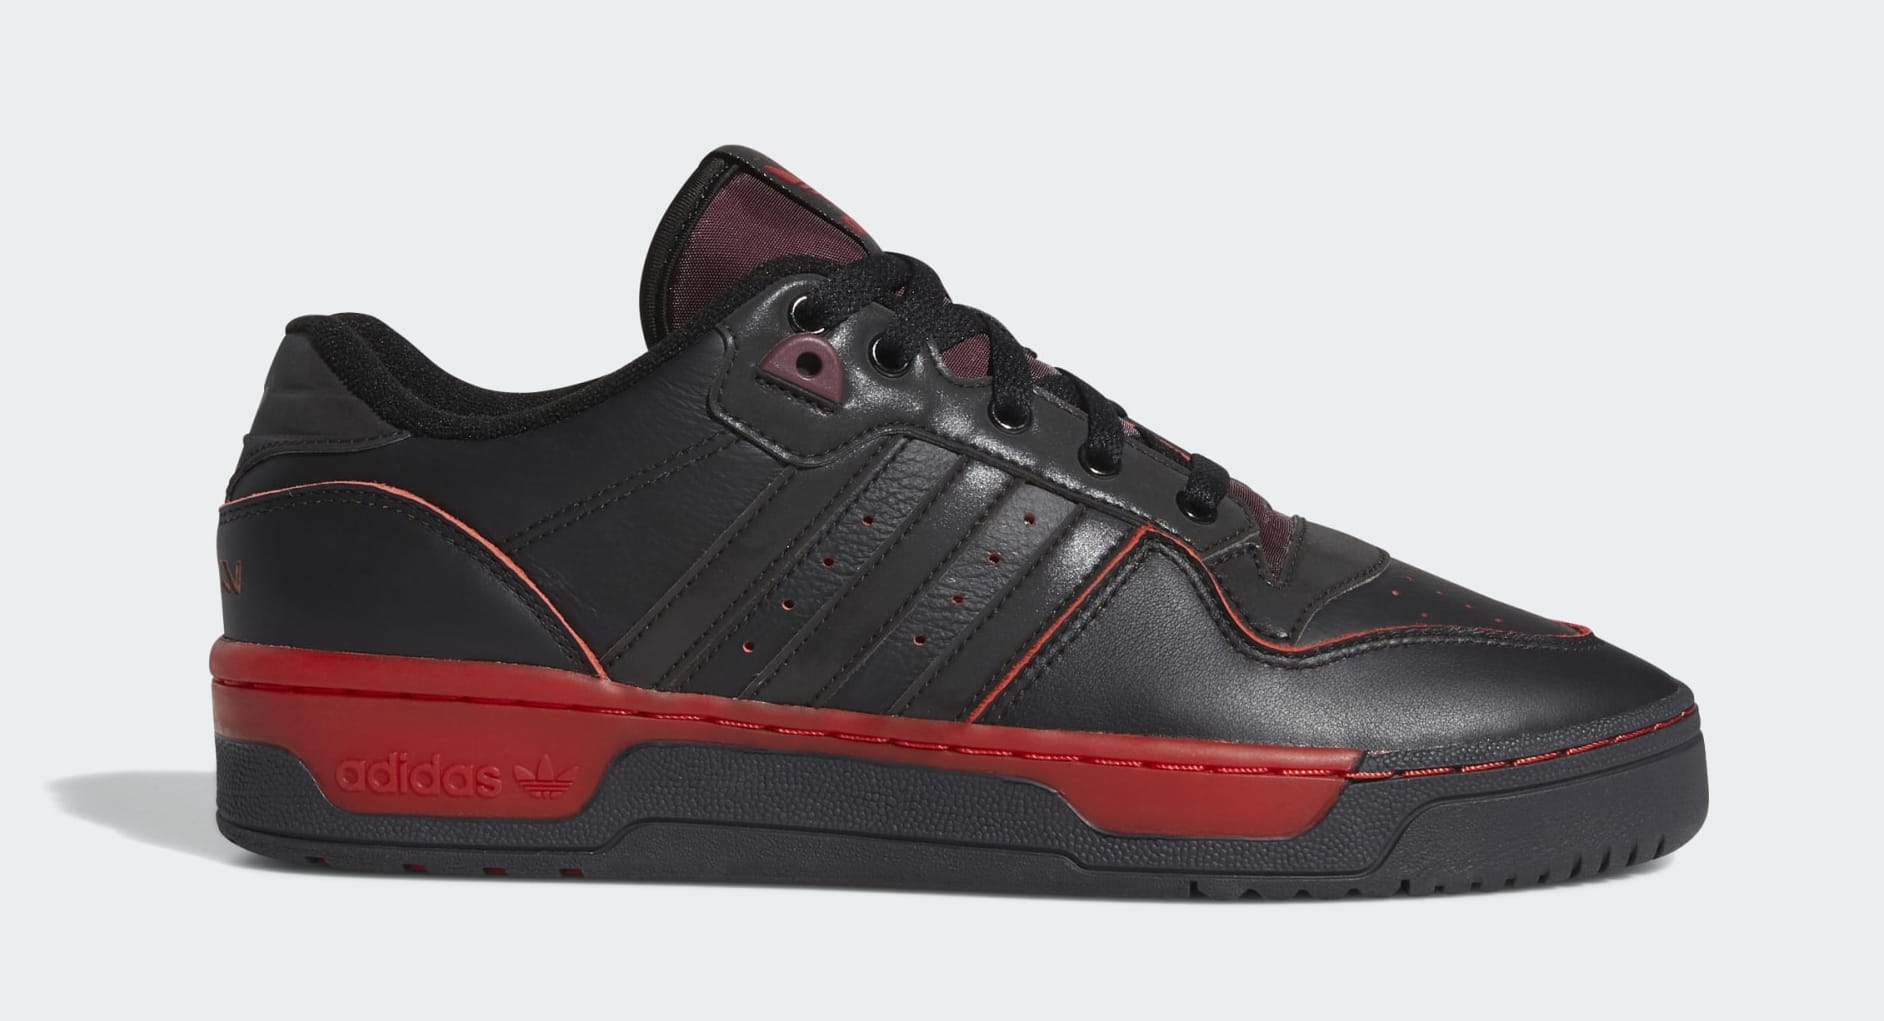 star-wars-adidas-rivalry-low-black-fv8036-lateral